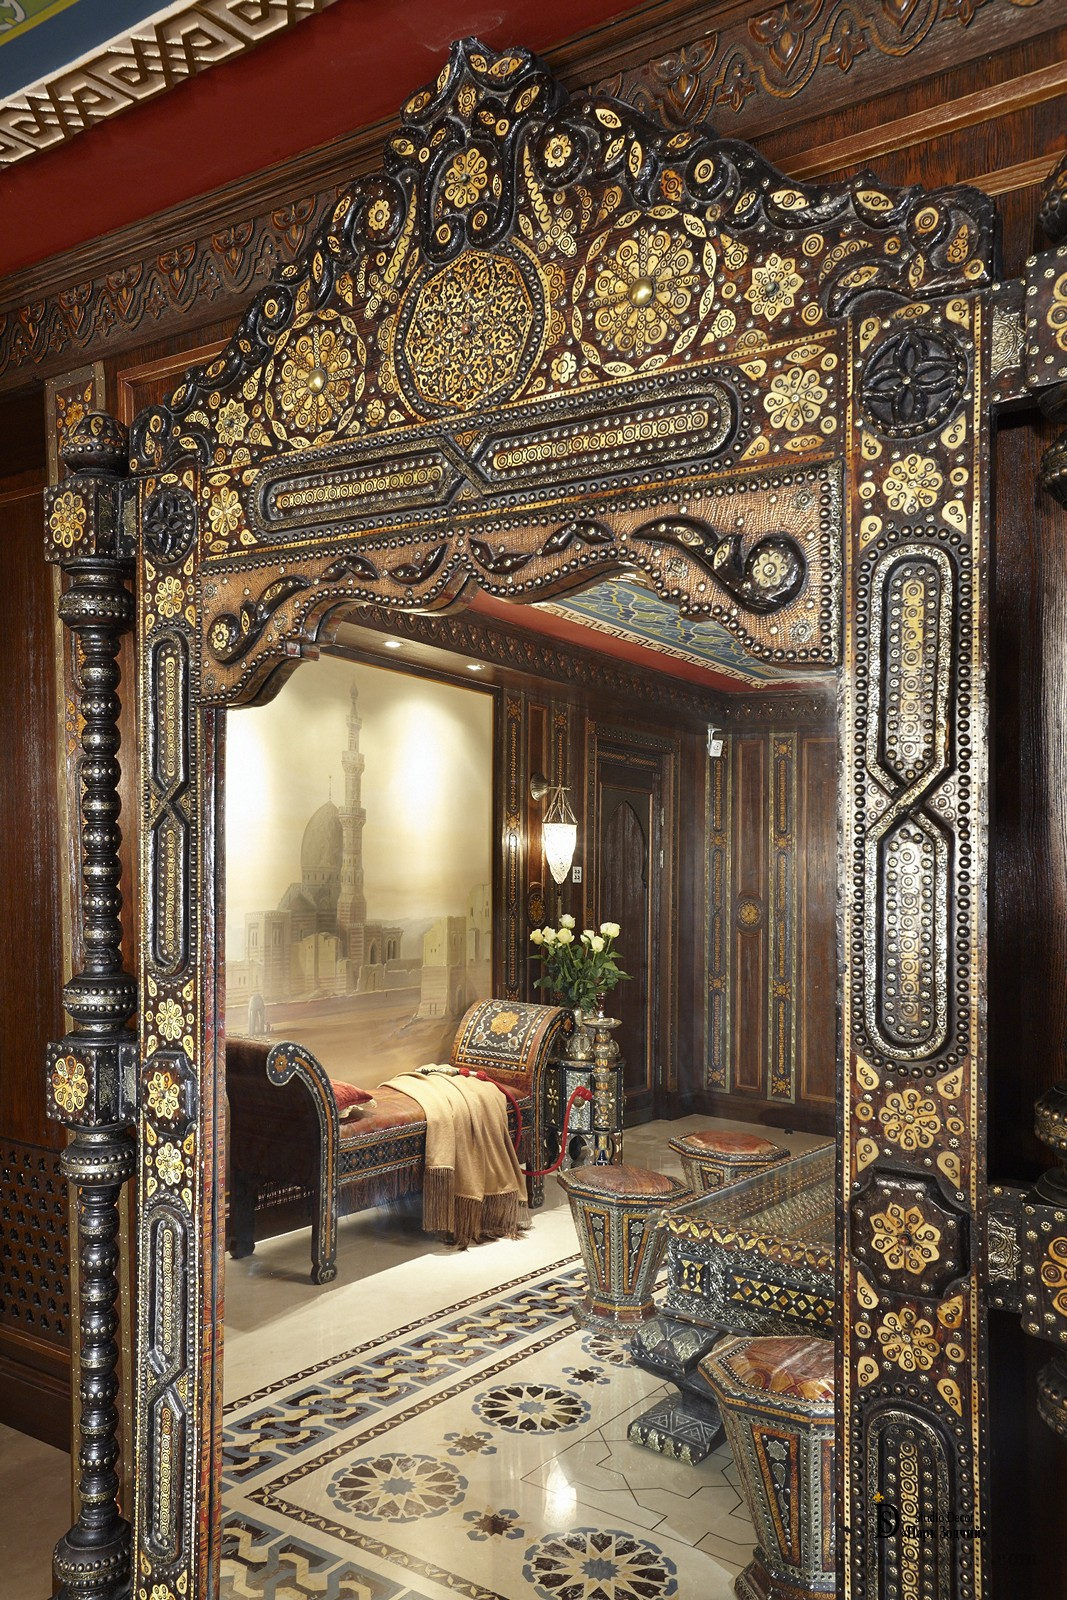 Mirror in a carved frame, delicately inlaid and gives the living room the palace grandeur of the Middle Ages